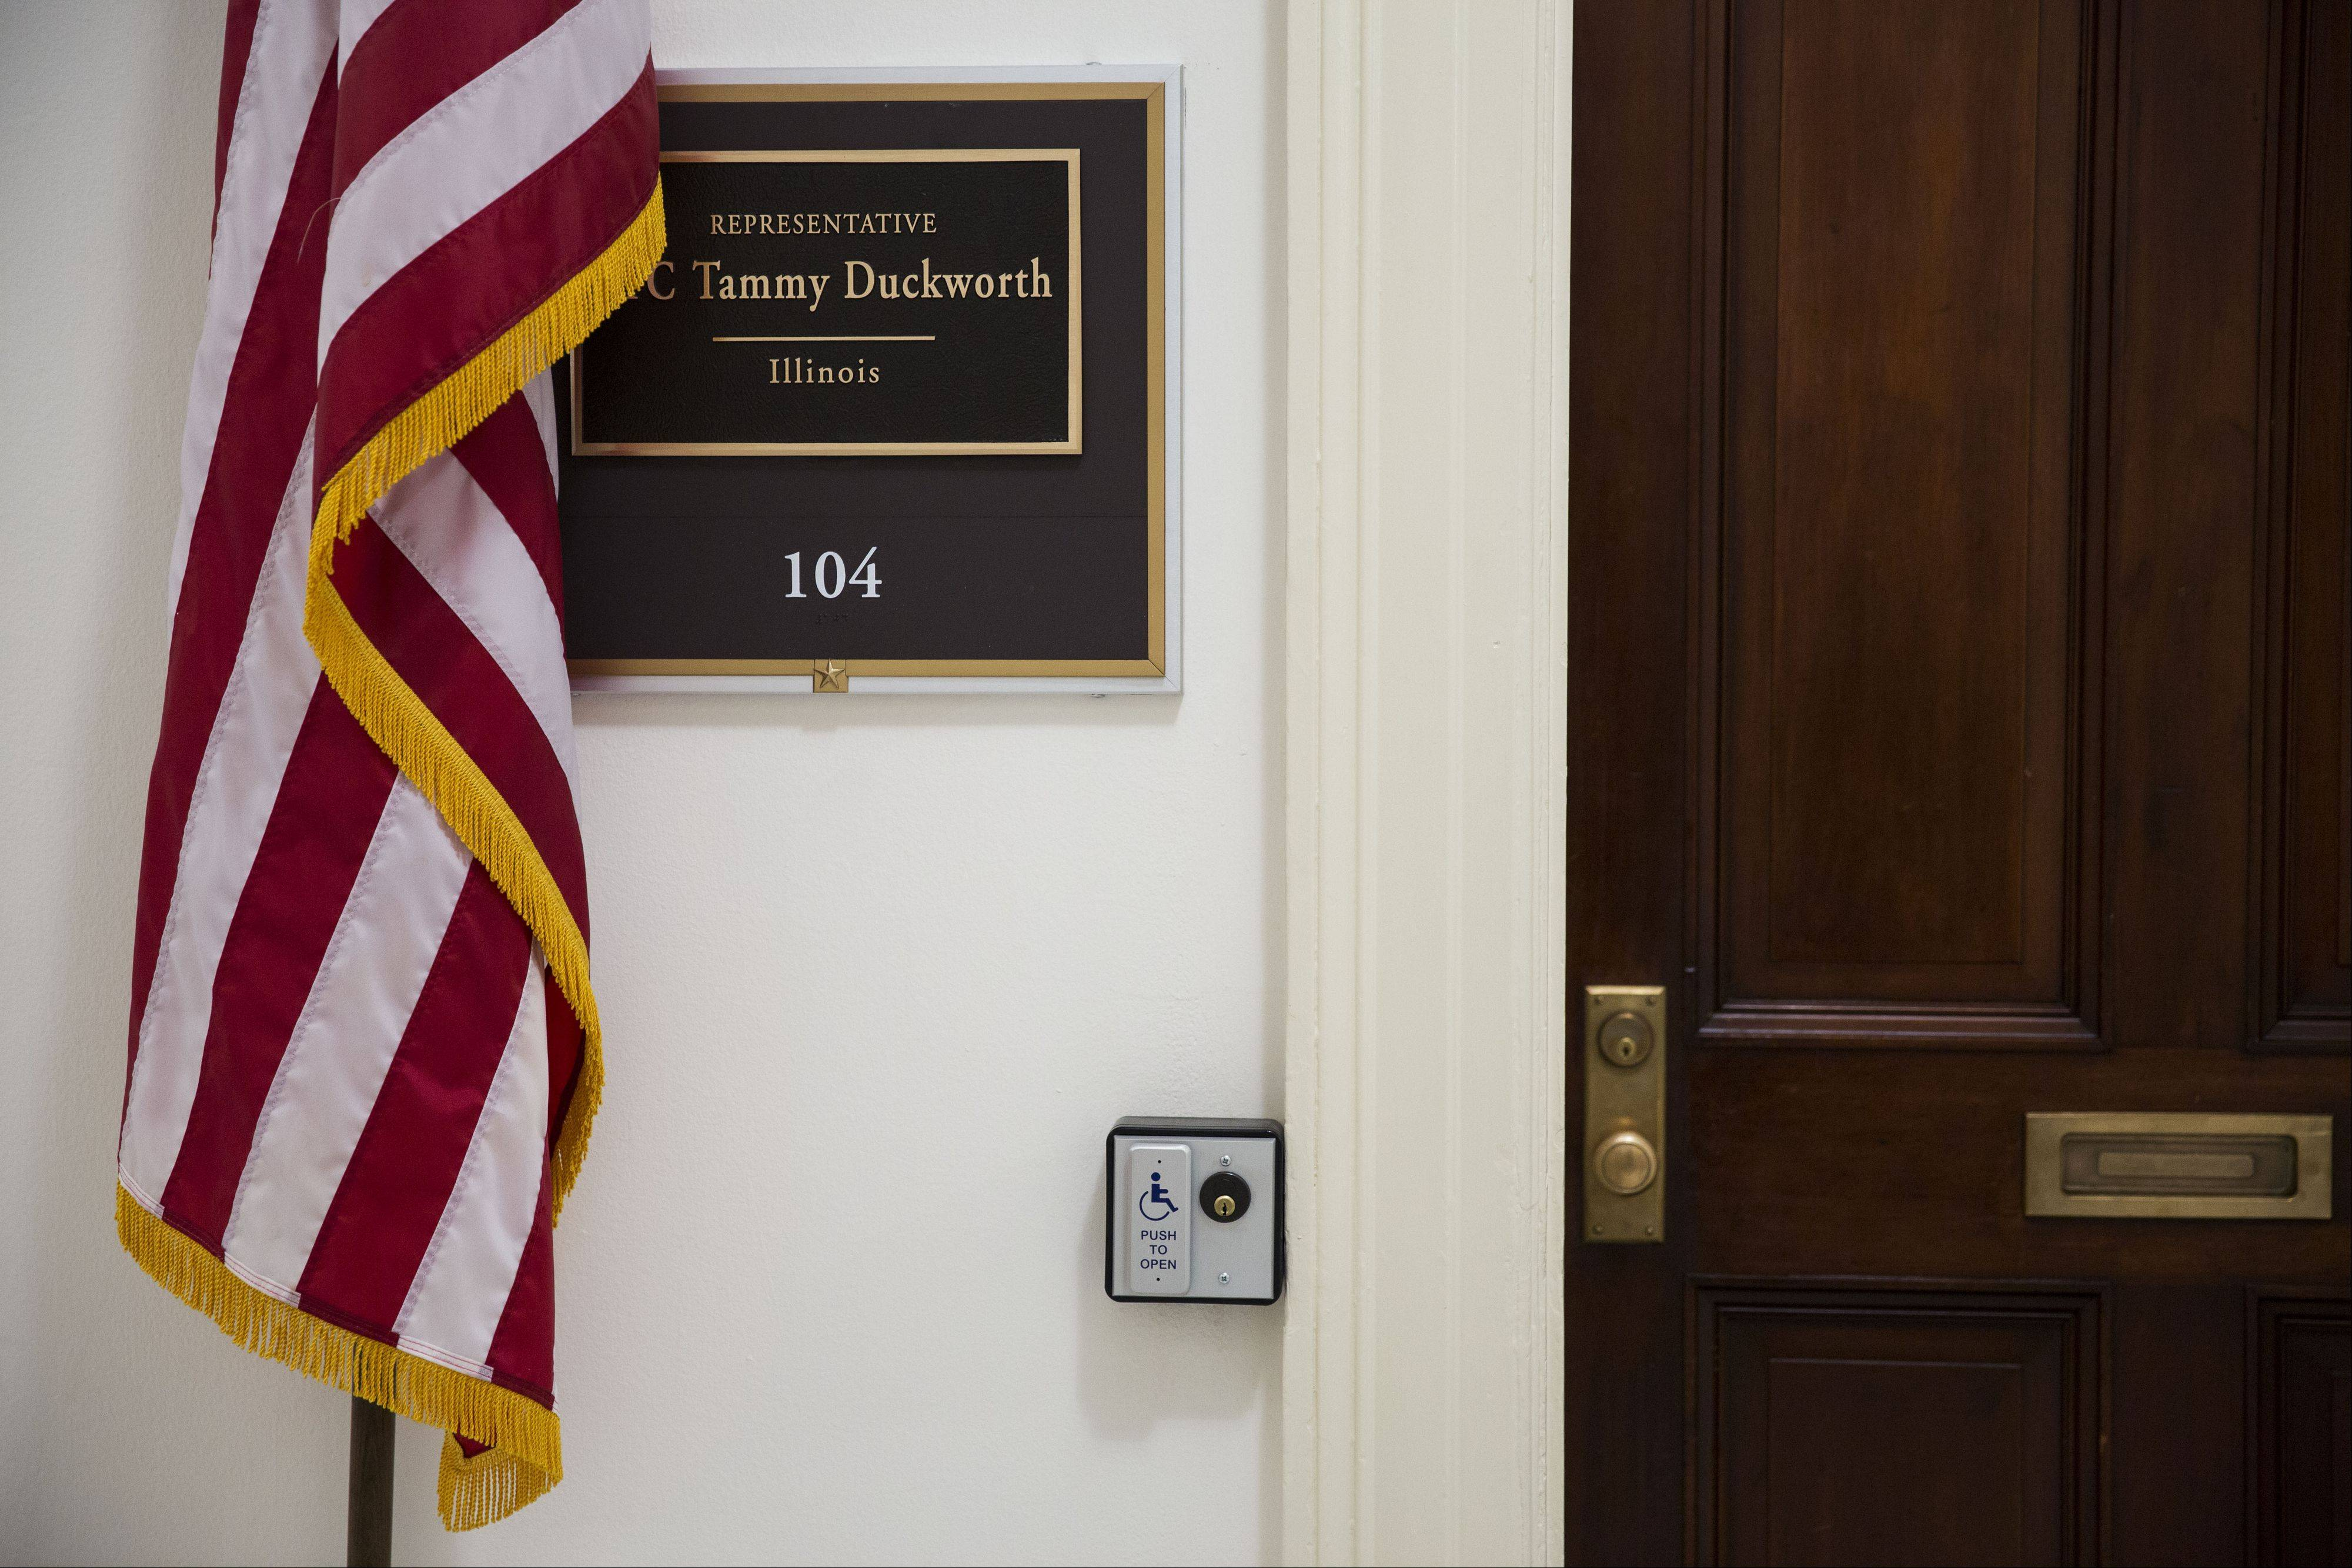 Democratic U.S. Rep. Tammy Duckworth encountered a basic hurdle as she prepared to move into her congressional office in Washington, D.C. -- the heavy wooden doors were impossible for a person in a wheelchair to open. She's since had an automatic opener installed.